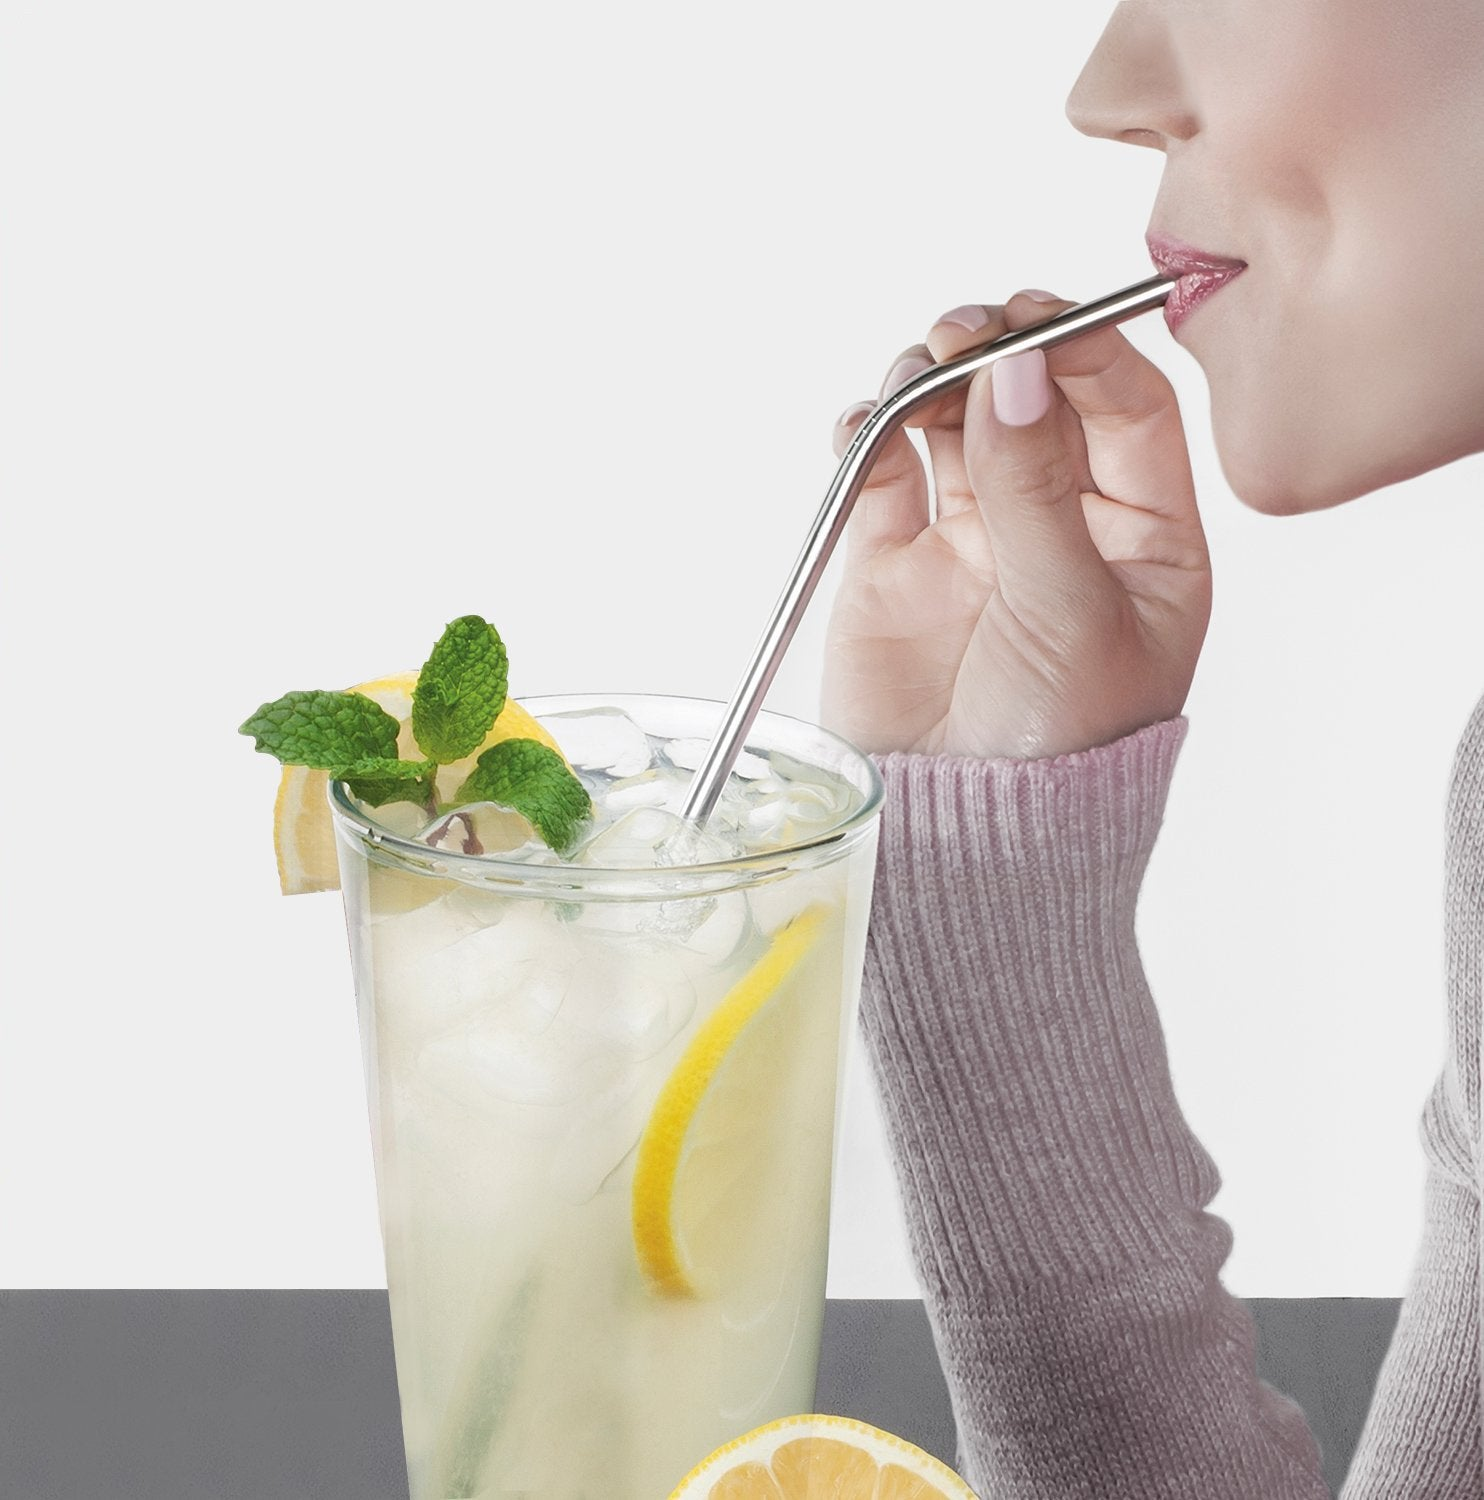 Collapsible, Portable, And Reusable Stainless Steel Drinking Straw With Case